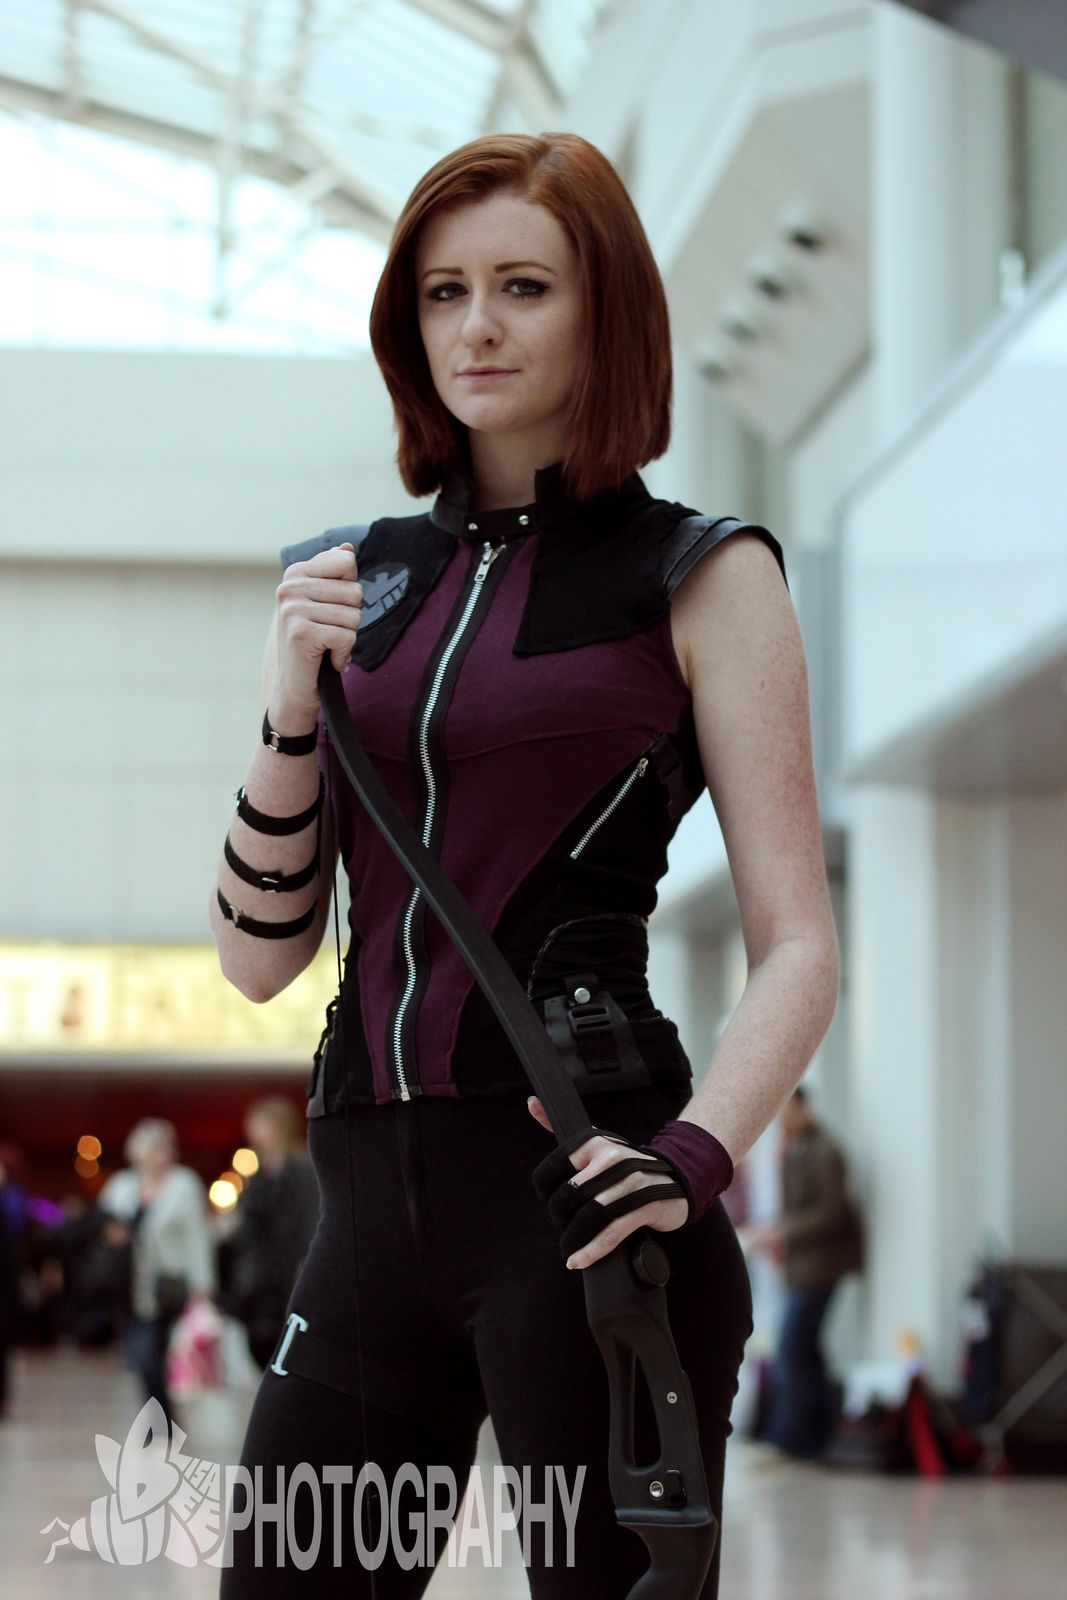 Genderbent Hawkeye cosplay Avengers Assemble.Made and modeled by LisaMarieCosplayPhotography by Lisa Bee  sc 1 st  Pinterest & Genderbent Hawkeye cosplay Avengers Assemble.Made and modeled by ...